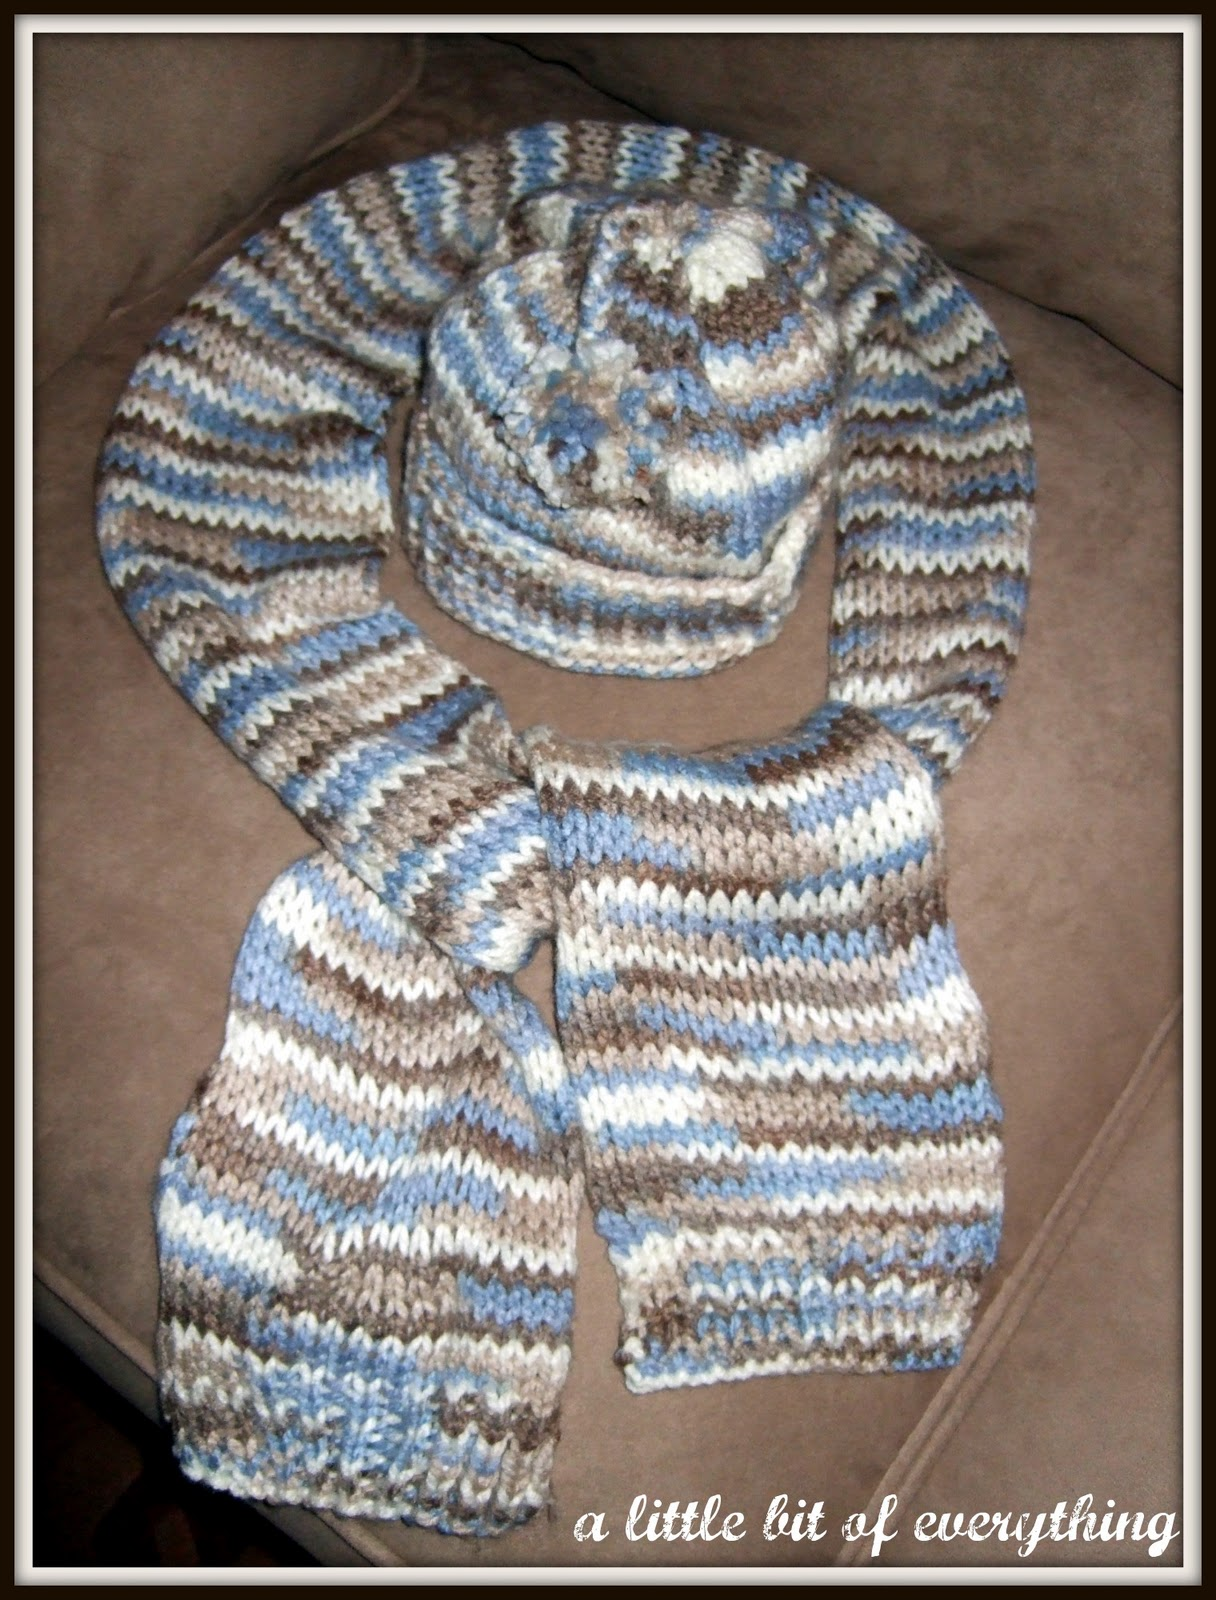 Knitted Stockinette Stitch Scarf Pattern : a little bit of everything: Needlework: Babys Hat and Scarf, Knitted